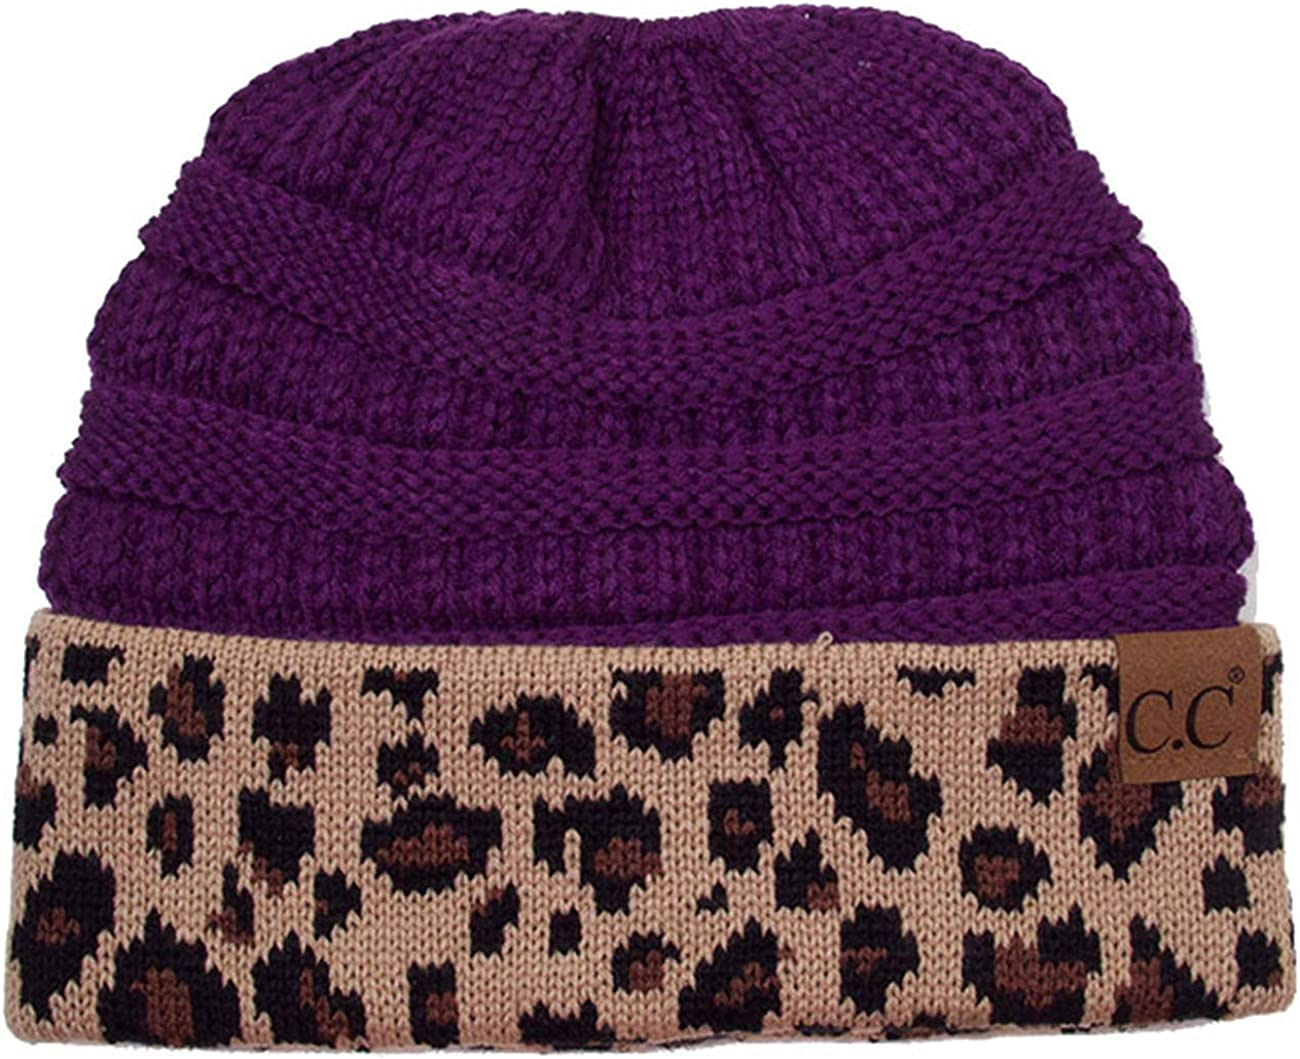 ScarvesMe CC Women Classic Solid Color with Leopard Cuff Beanie